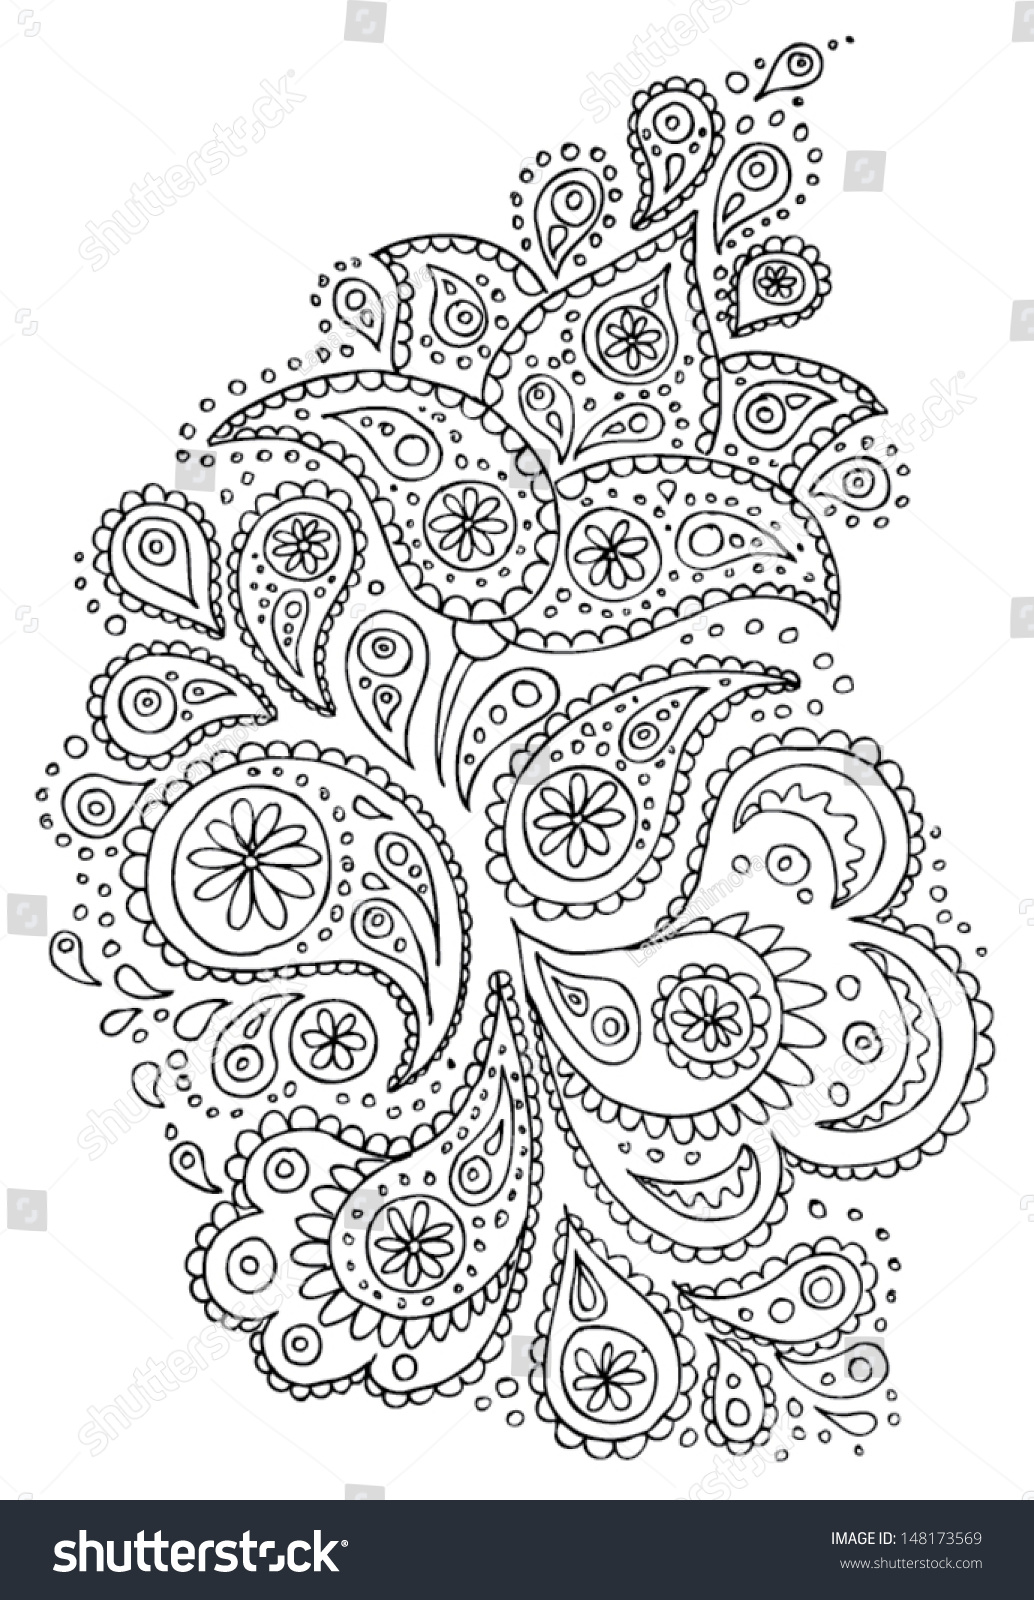 Henna Paisley Flowers Mehndi Tattoo Hand Stock Vector